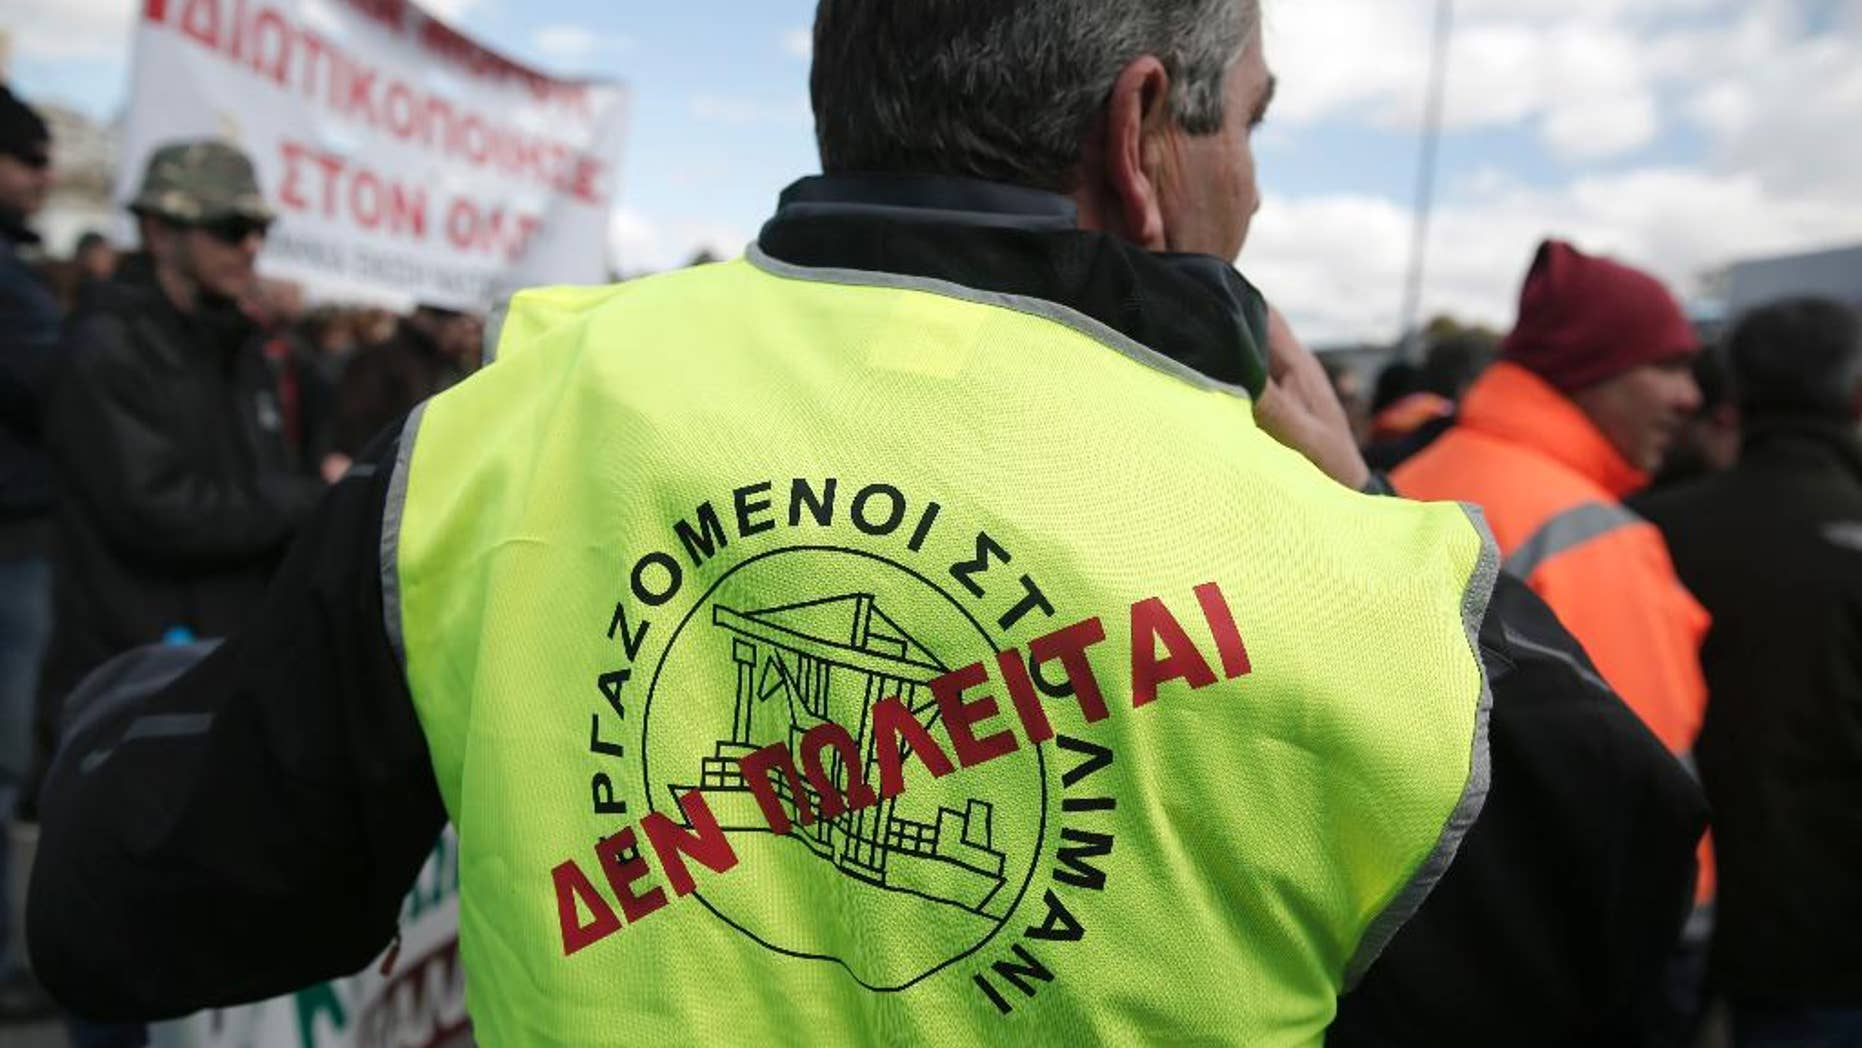 """A dock worker with a """"Not for sale"""" sign on his vest takes part in a protest against government plans to further privatize the harbor of Piraeus, Greece's busiest, in Piraeus, on Tuesday, March 11, 2014. Several hundred people took part in the peaceful demonstration. Once a separate town, Piraeus is now incorporated in the greater Athens area. (AP Photo/Petros Giannakouris)"""